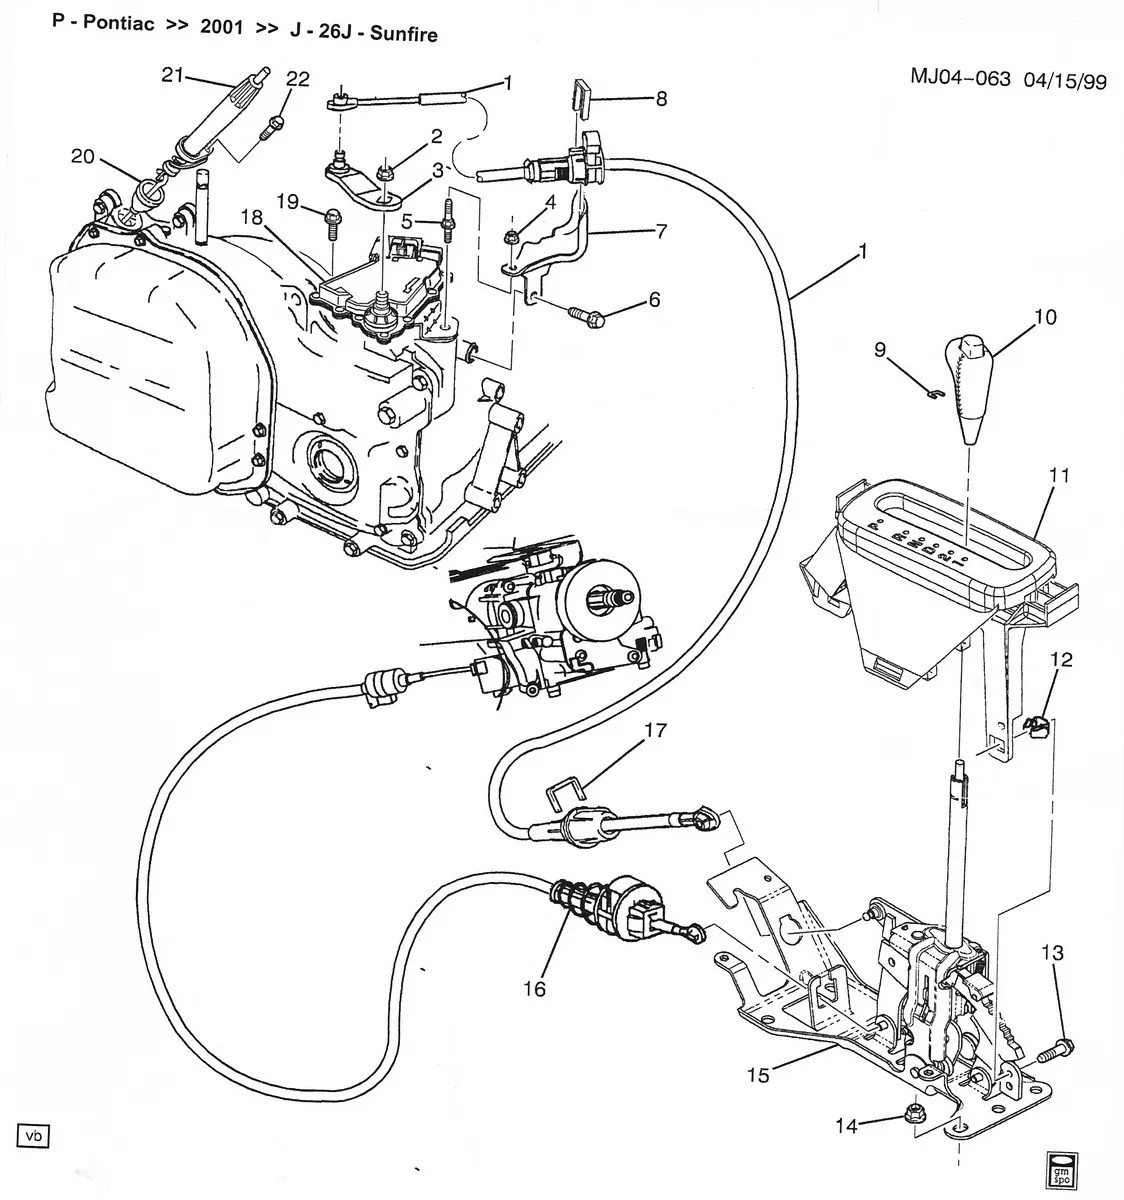 hight resolution of 1997 chevy cavalier engine diagram 2 4 wiring diagram portal 2002 chevrolet cavalier engine diagram wiring